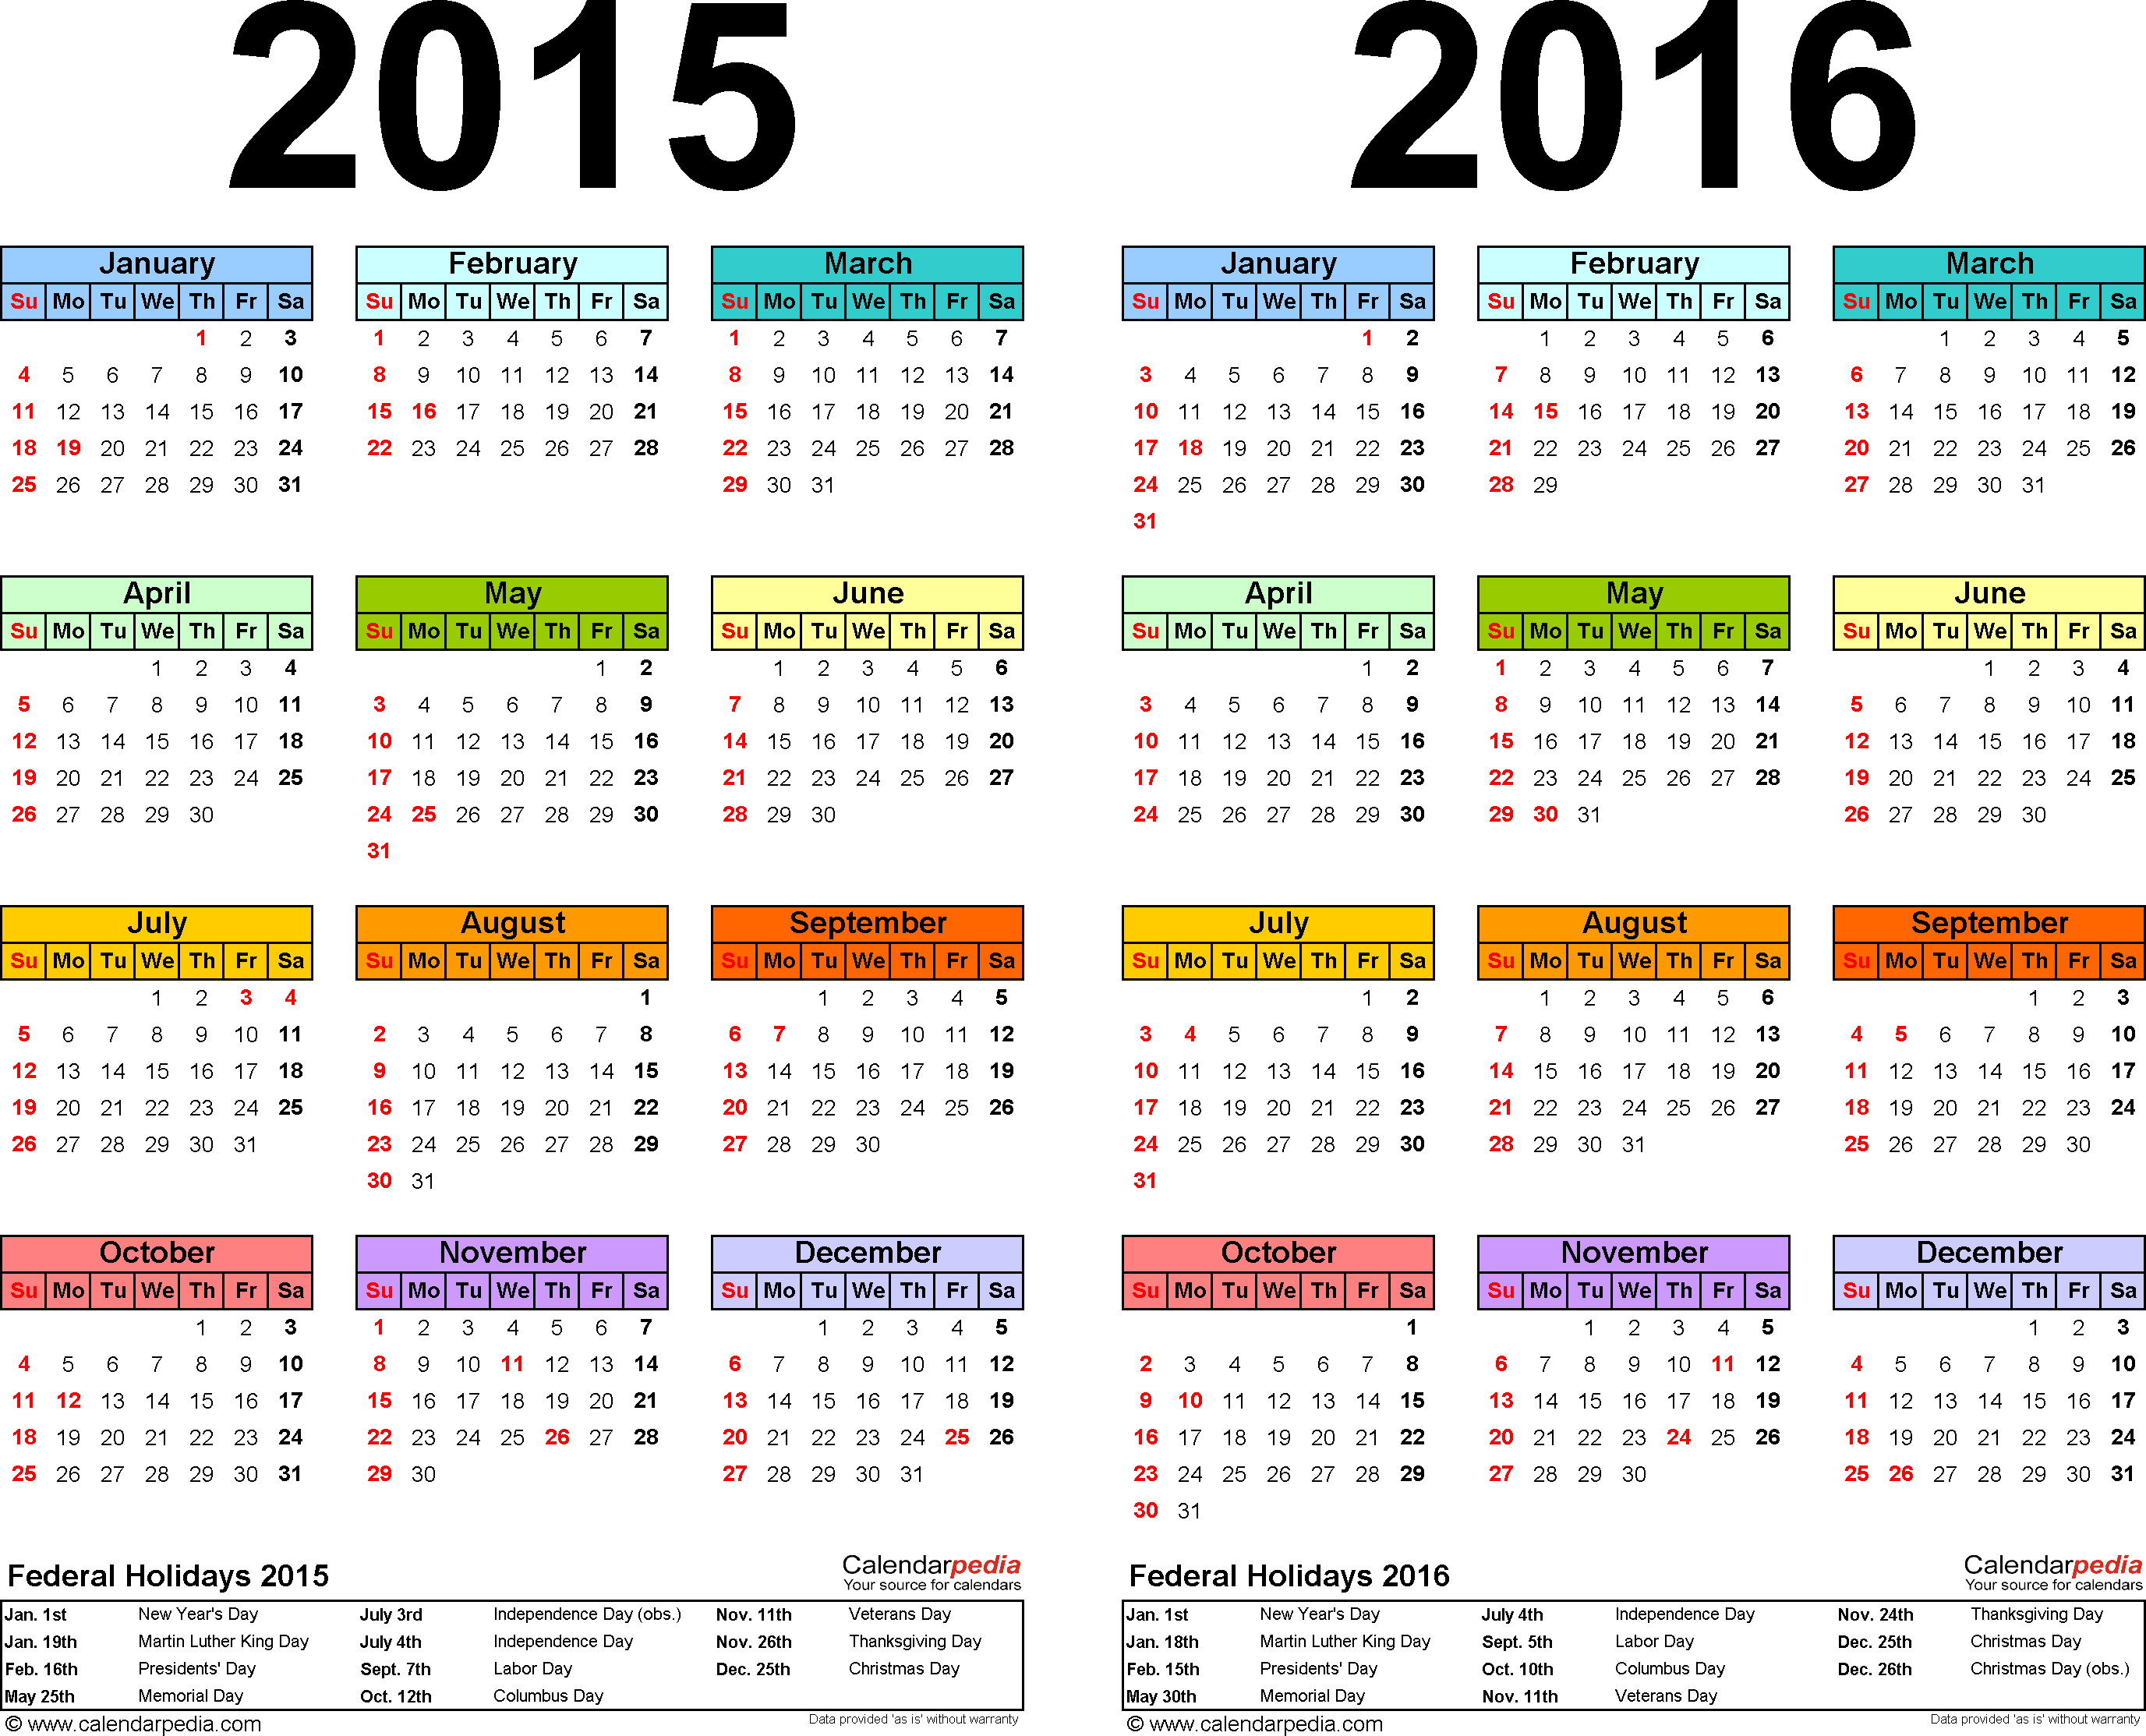 2015-2016 Calendar - free printable two-year Excel calendars